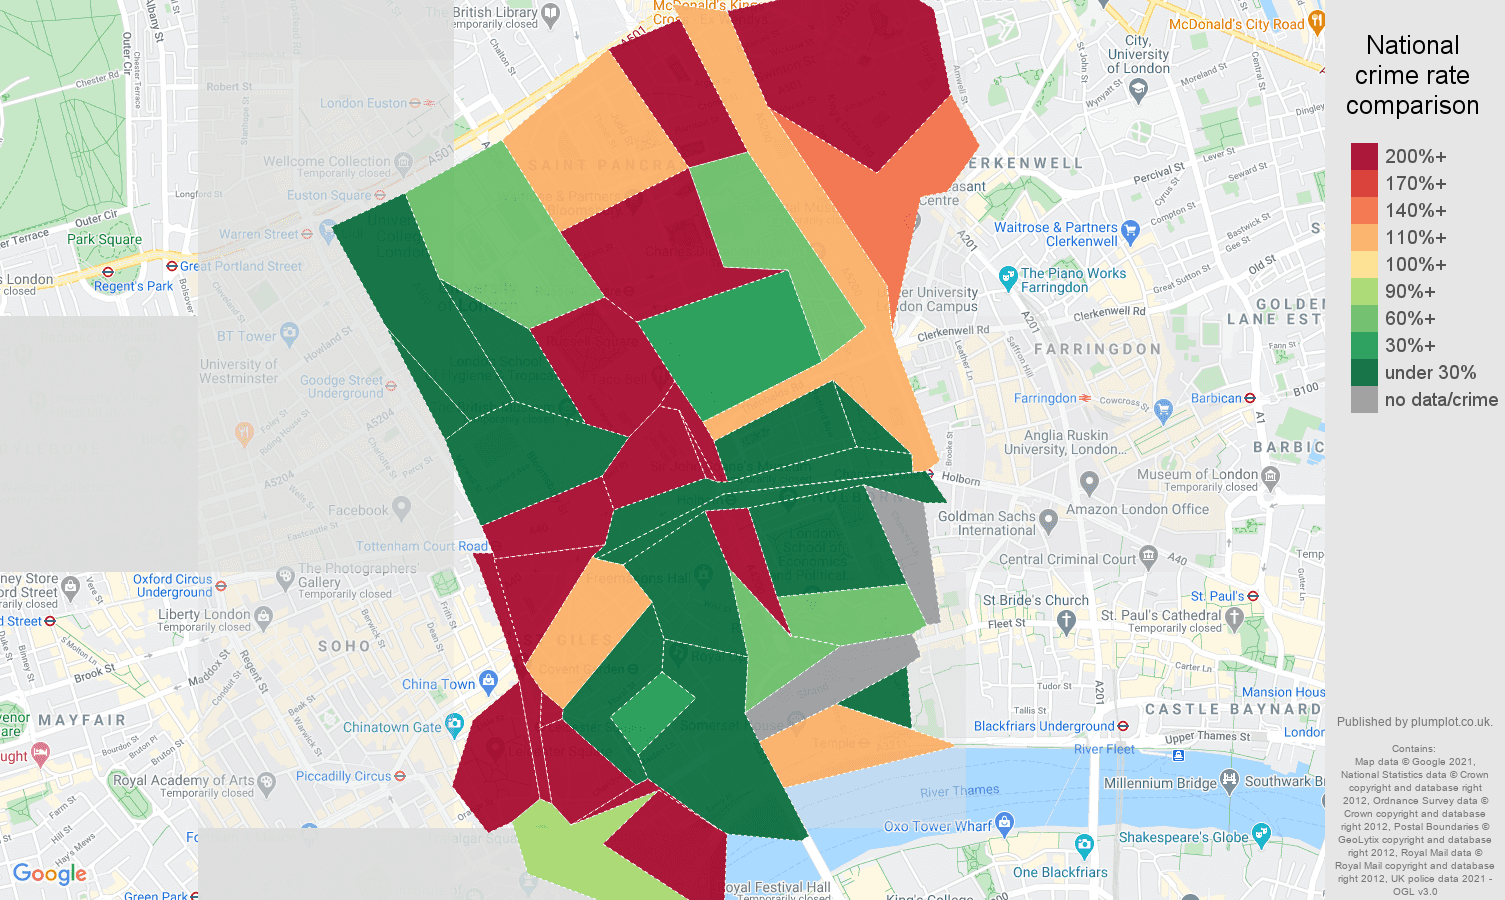 Western Central London drugs crime rate comparison map